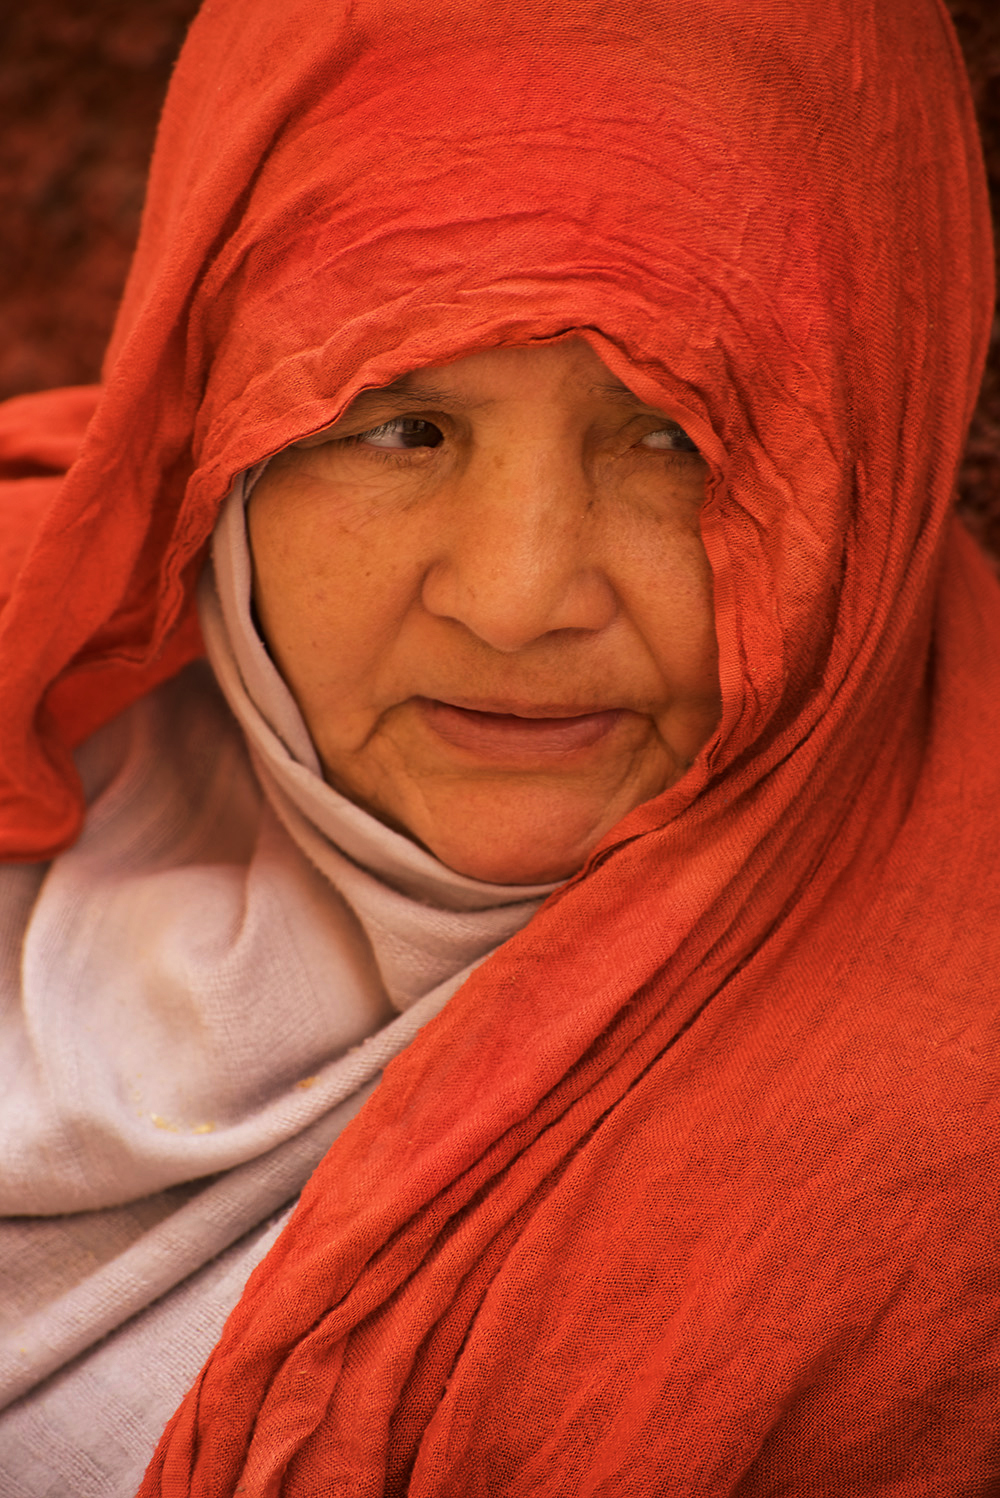 Old woman on the street